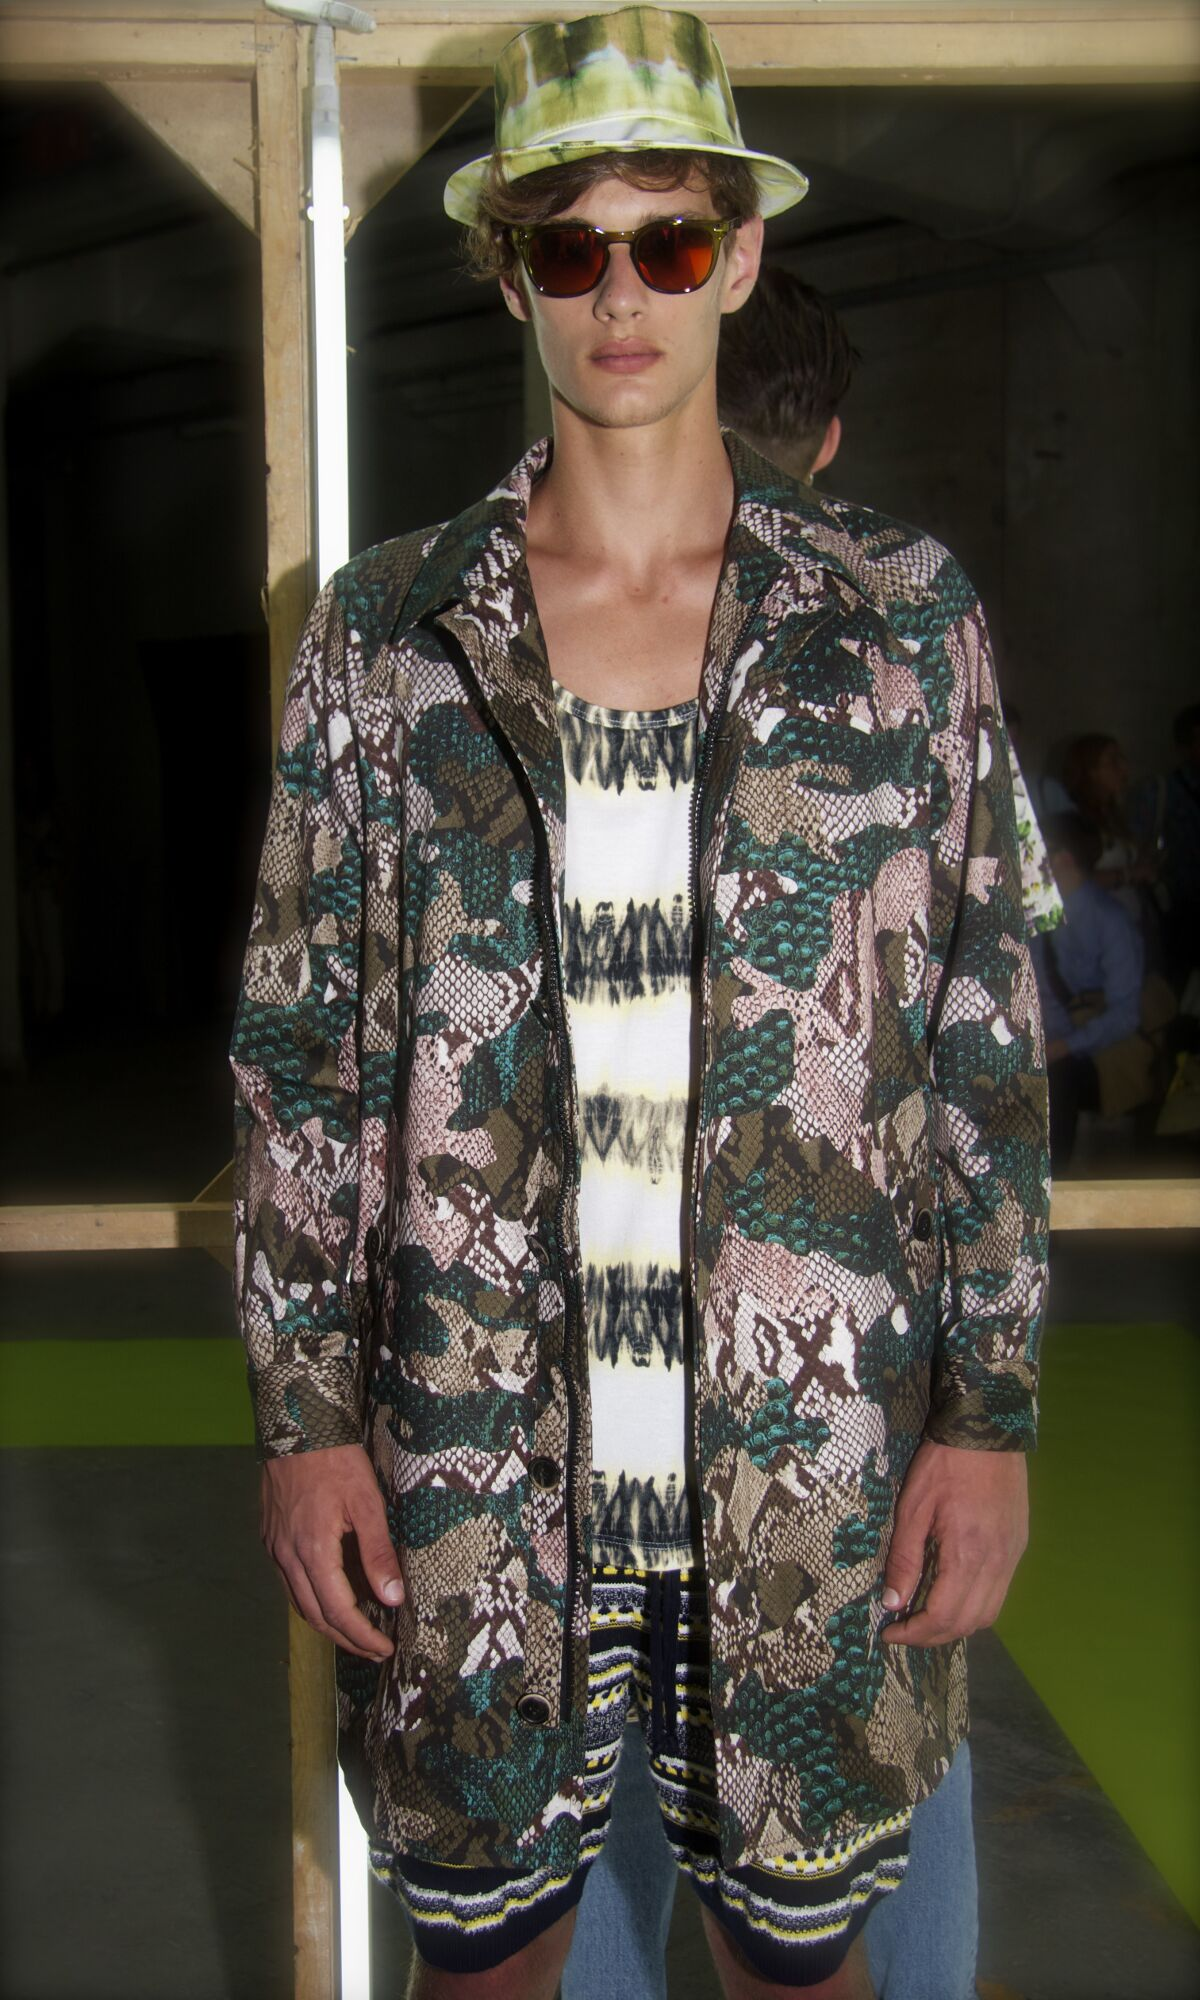 Msgm Summer 2014 Men's Collection Pitti Immagine Uomo